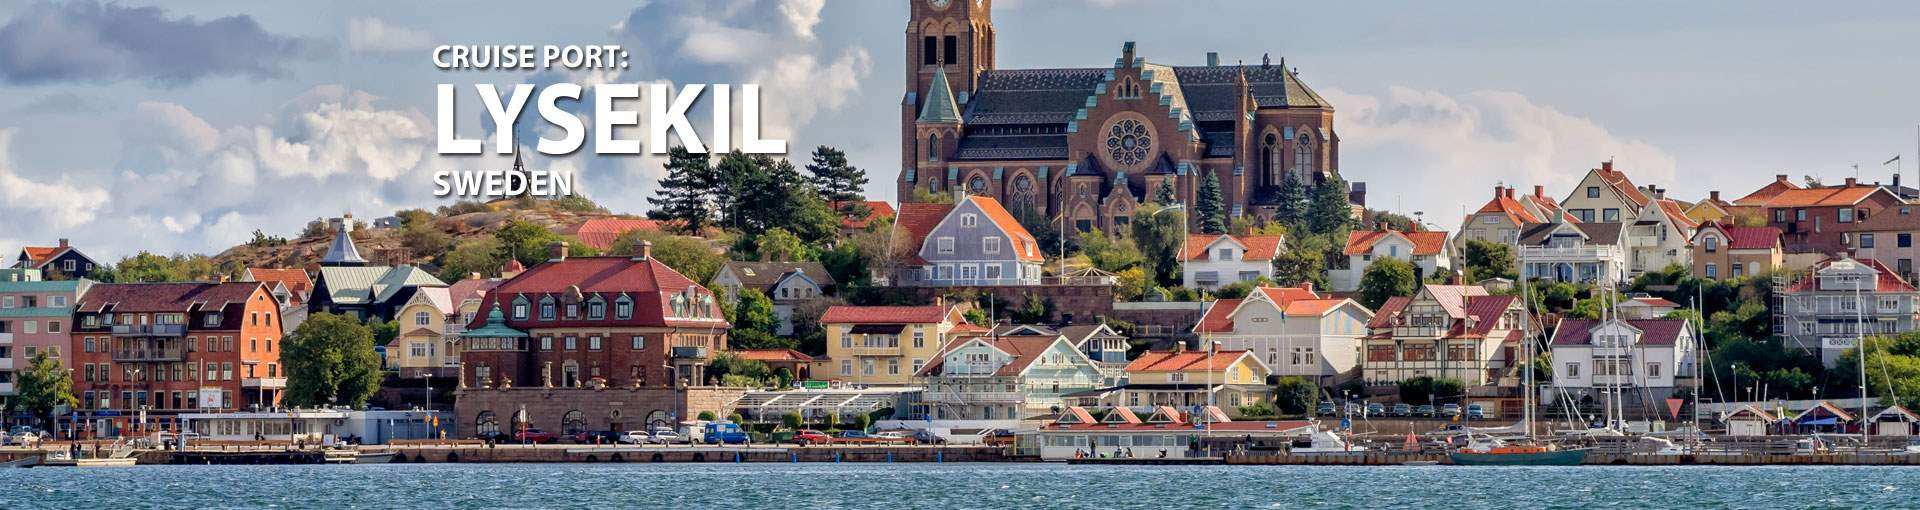 Cruises to Lysekil, Sweden